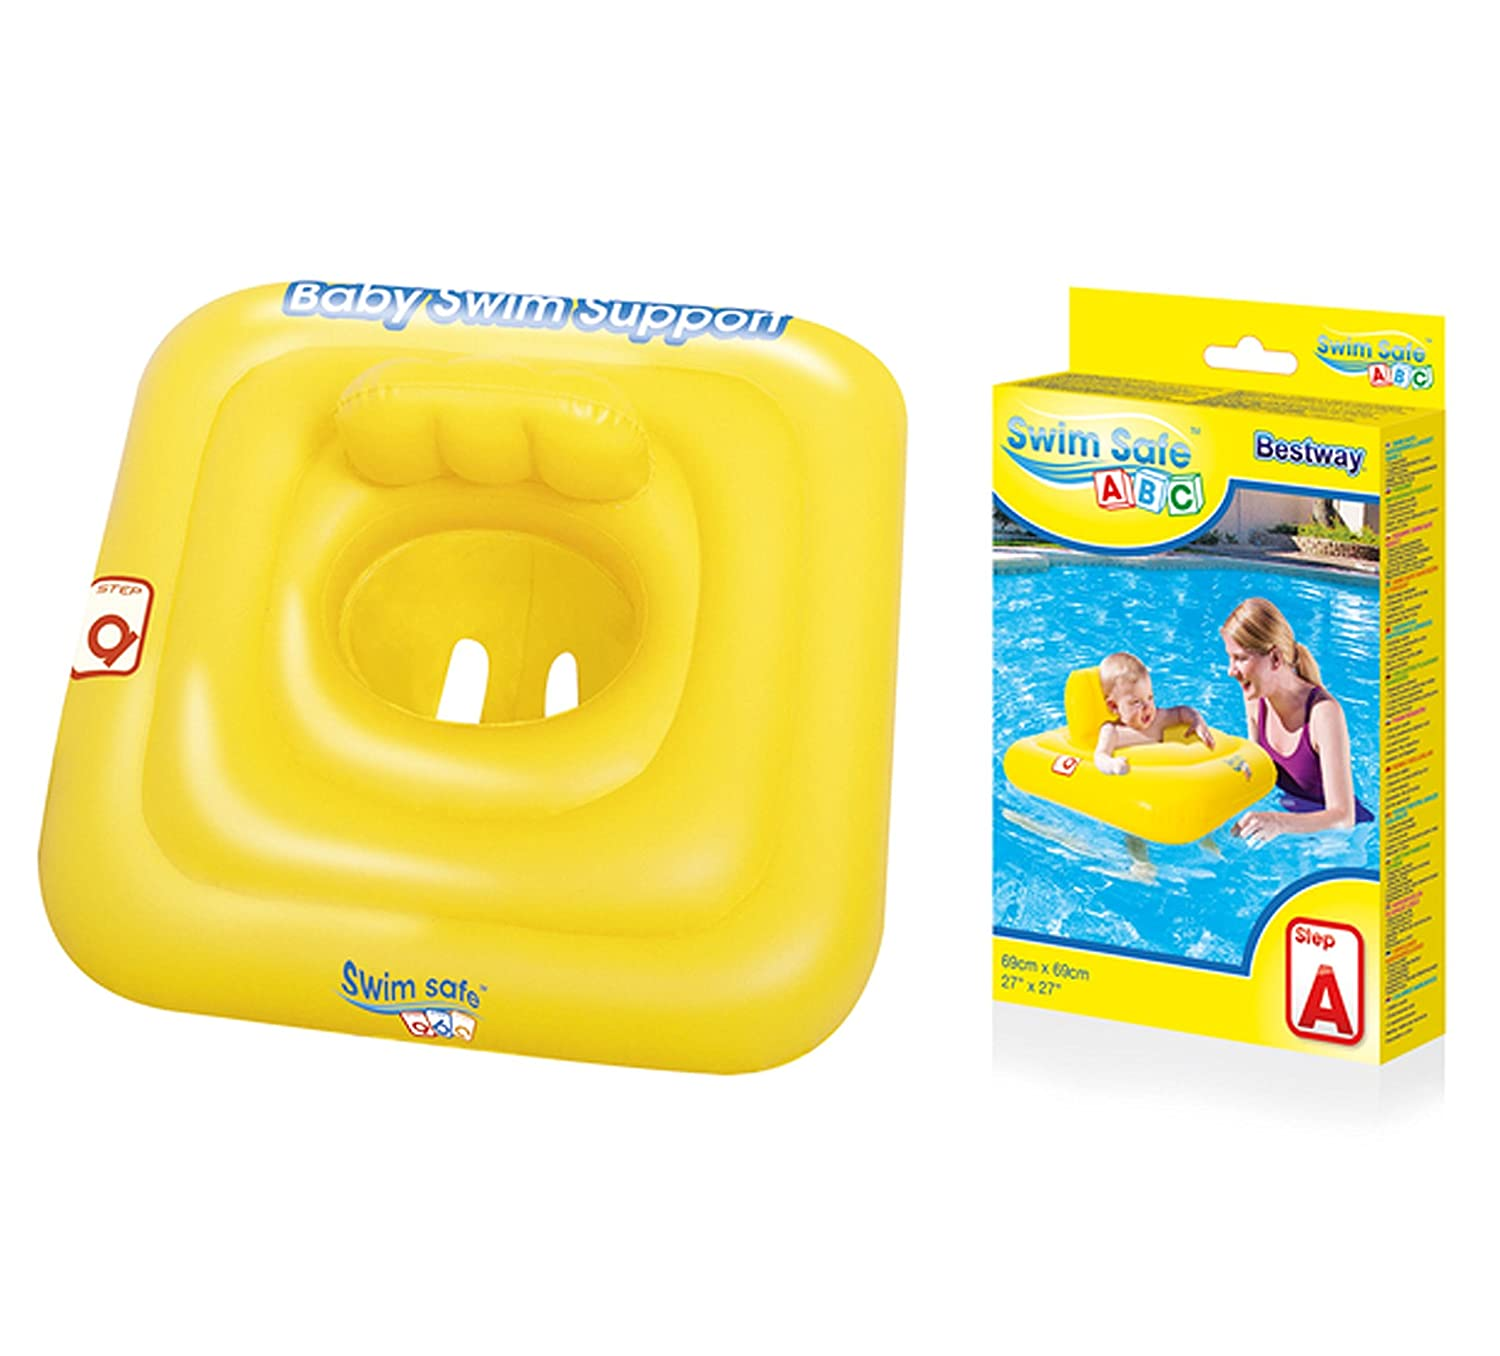 Bestway Baby Swim Safe Seat (Step A) Learn to Swim Square Inflatable,Yellow, 0-12 Months Jakabel BW32050